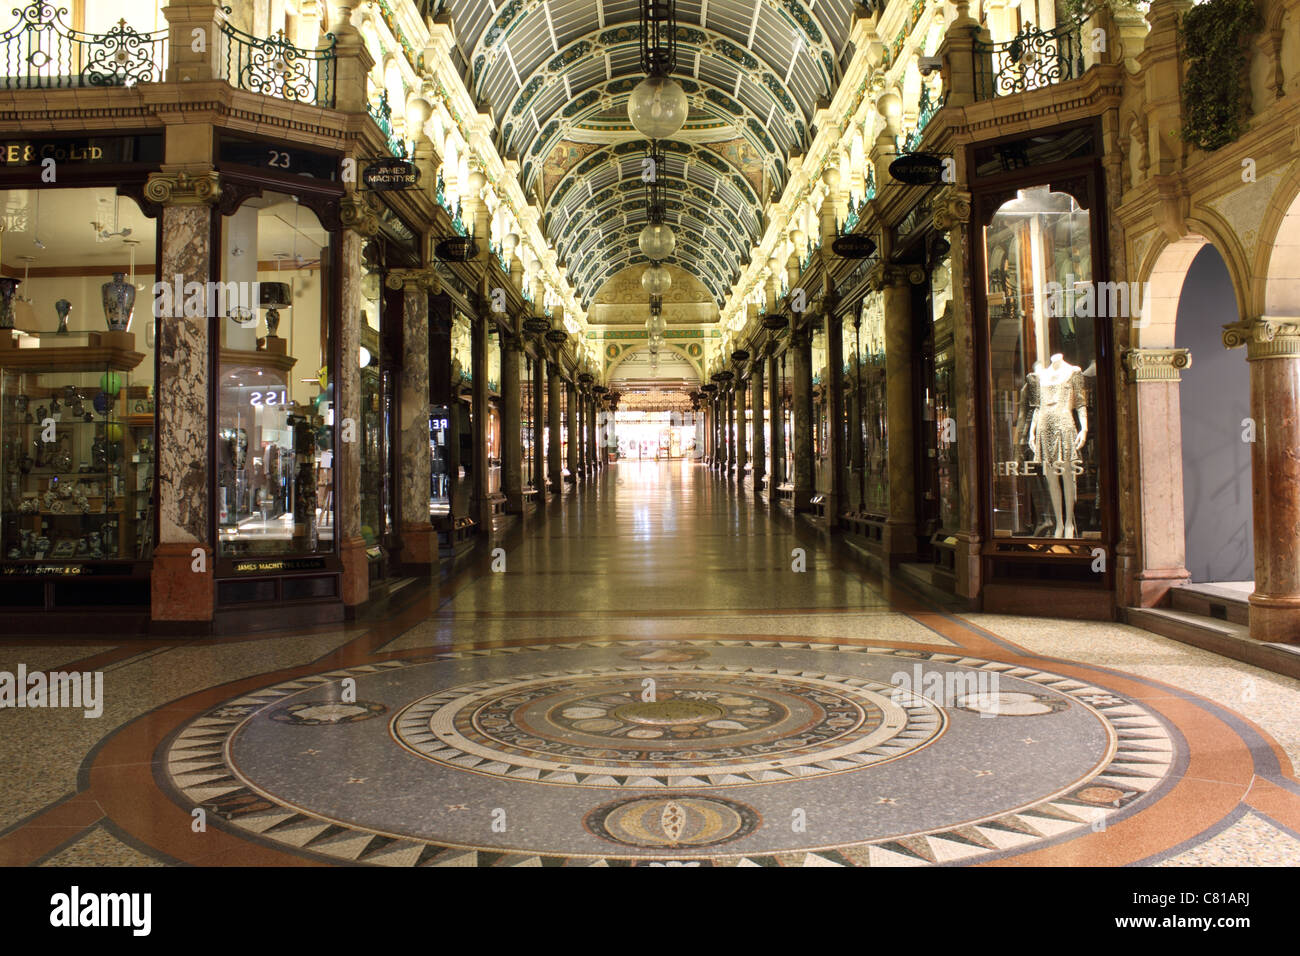 victoria arcade Leeds no people shopping arcade - Stock Image